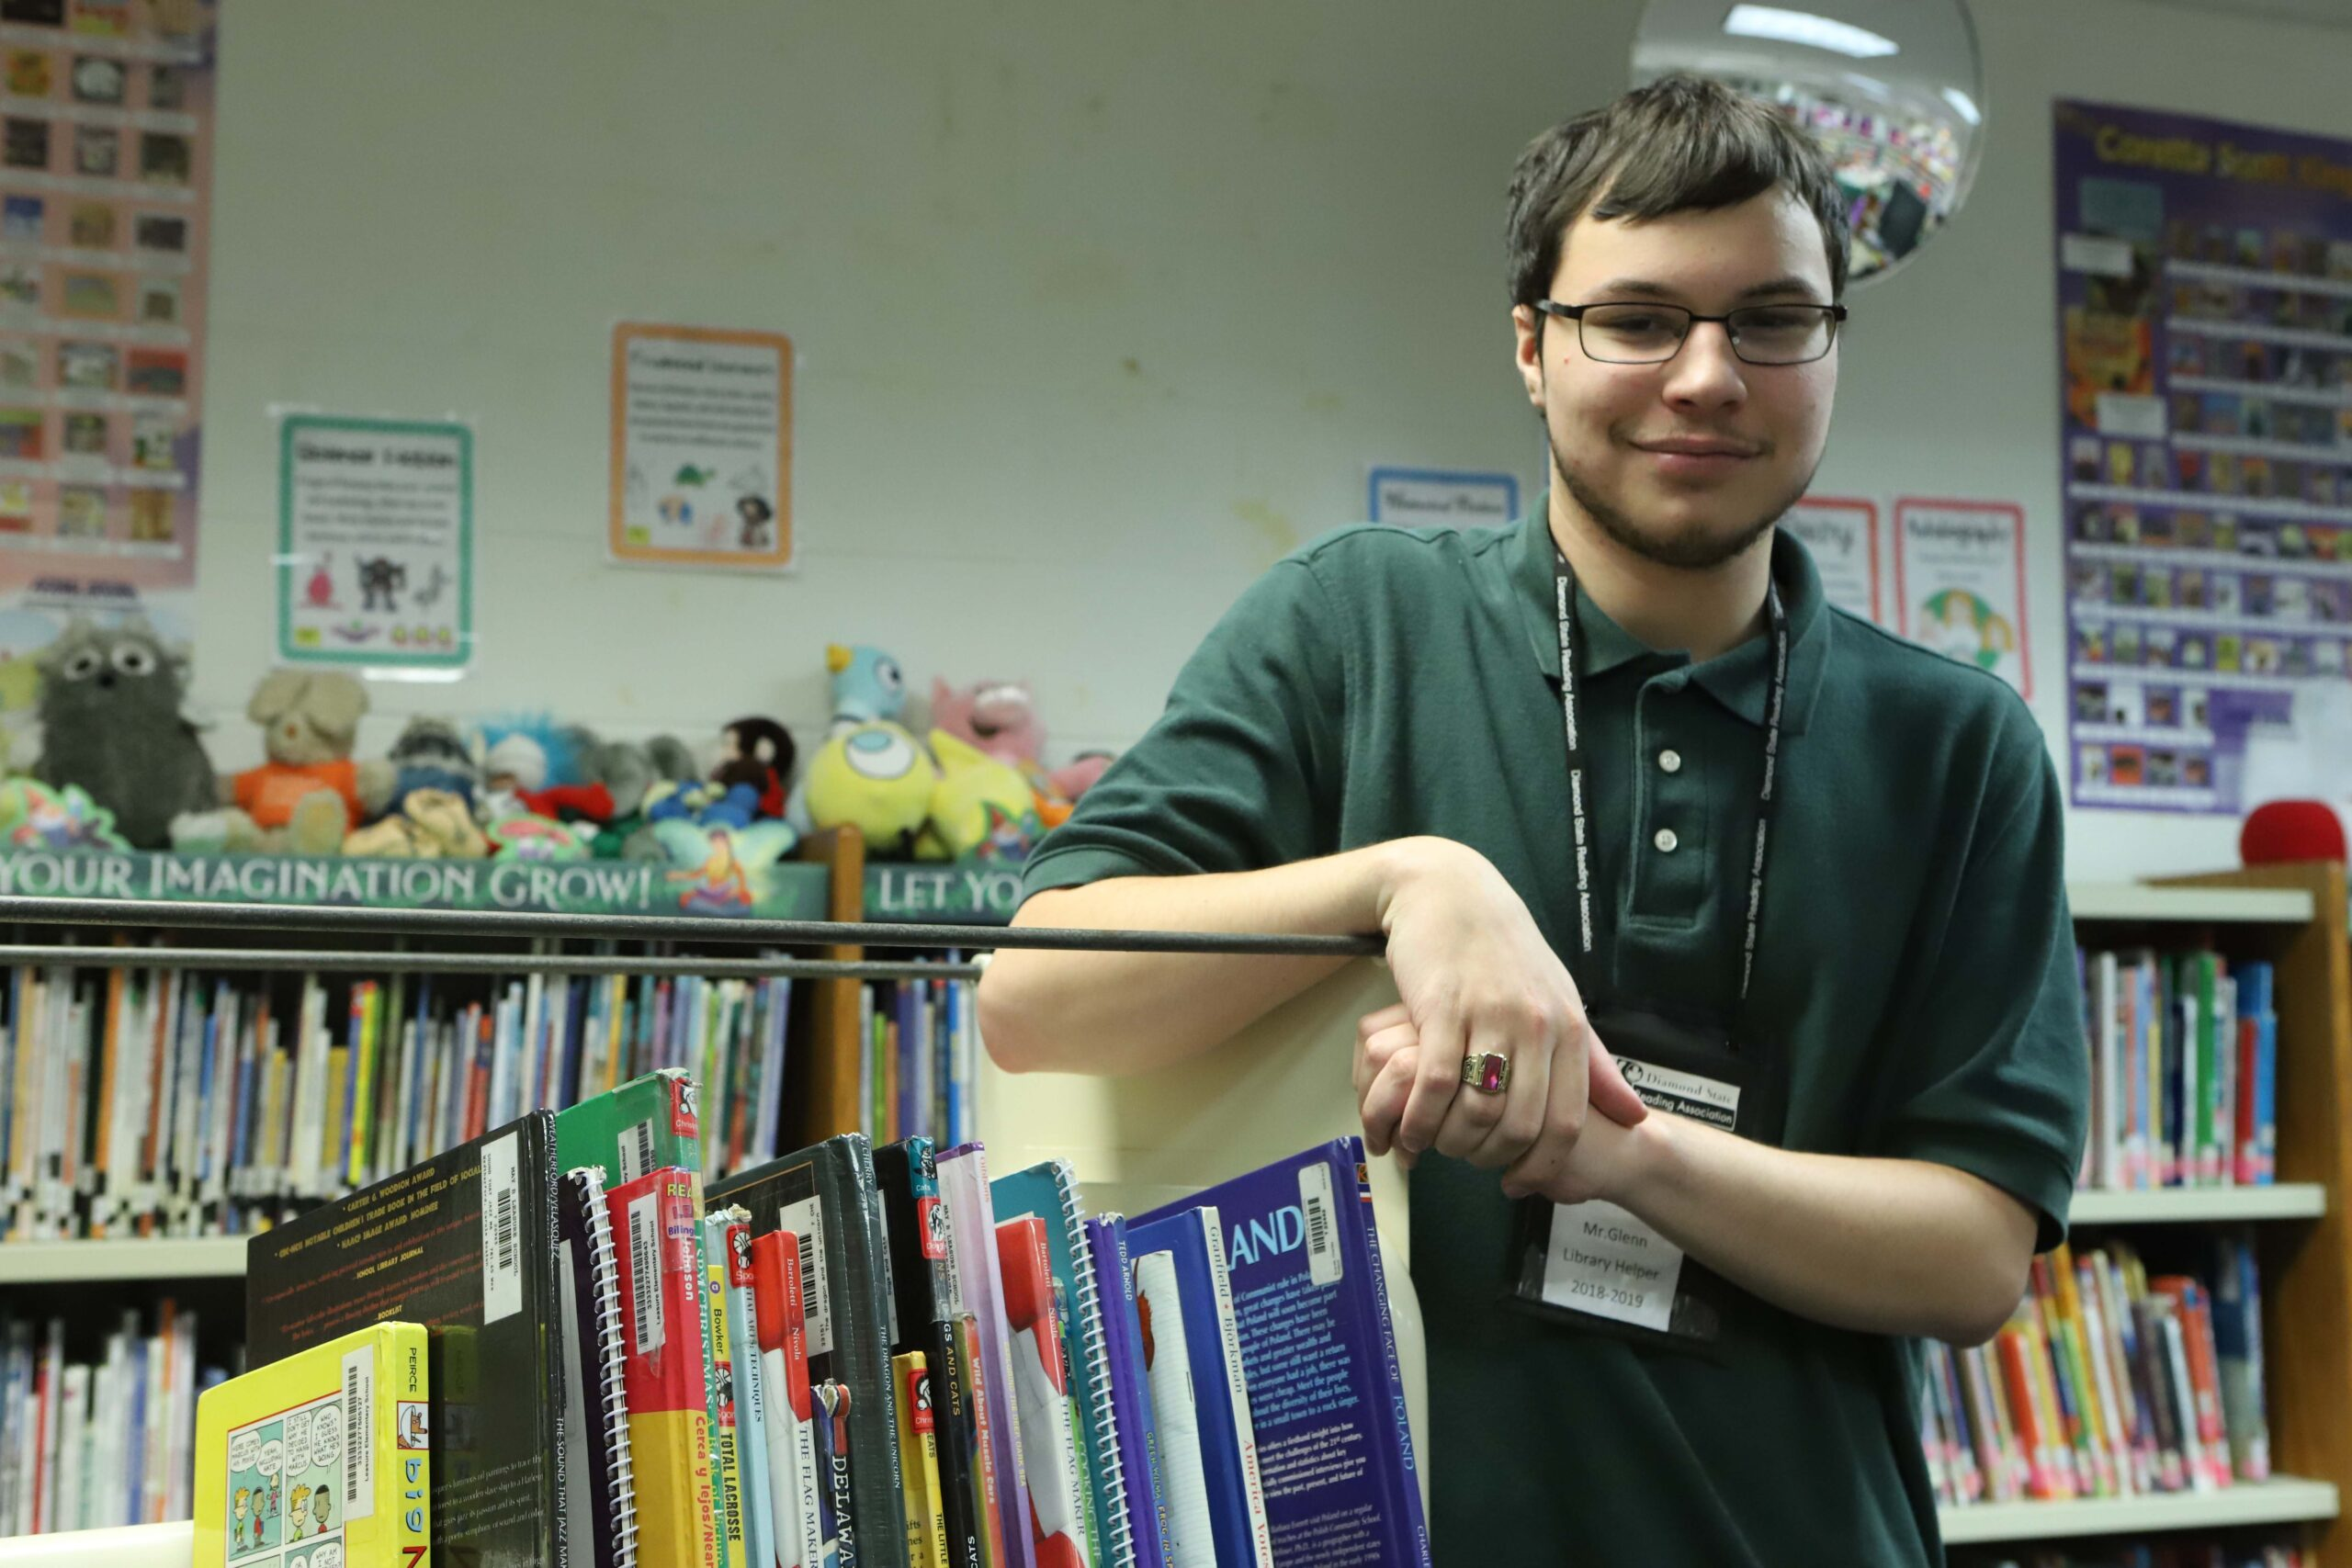 man leaning on shelf of books smiling at camera